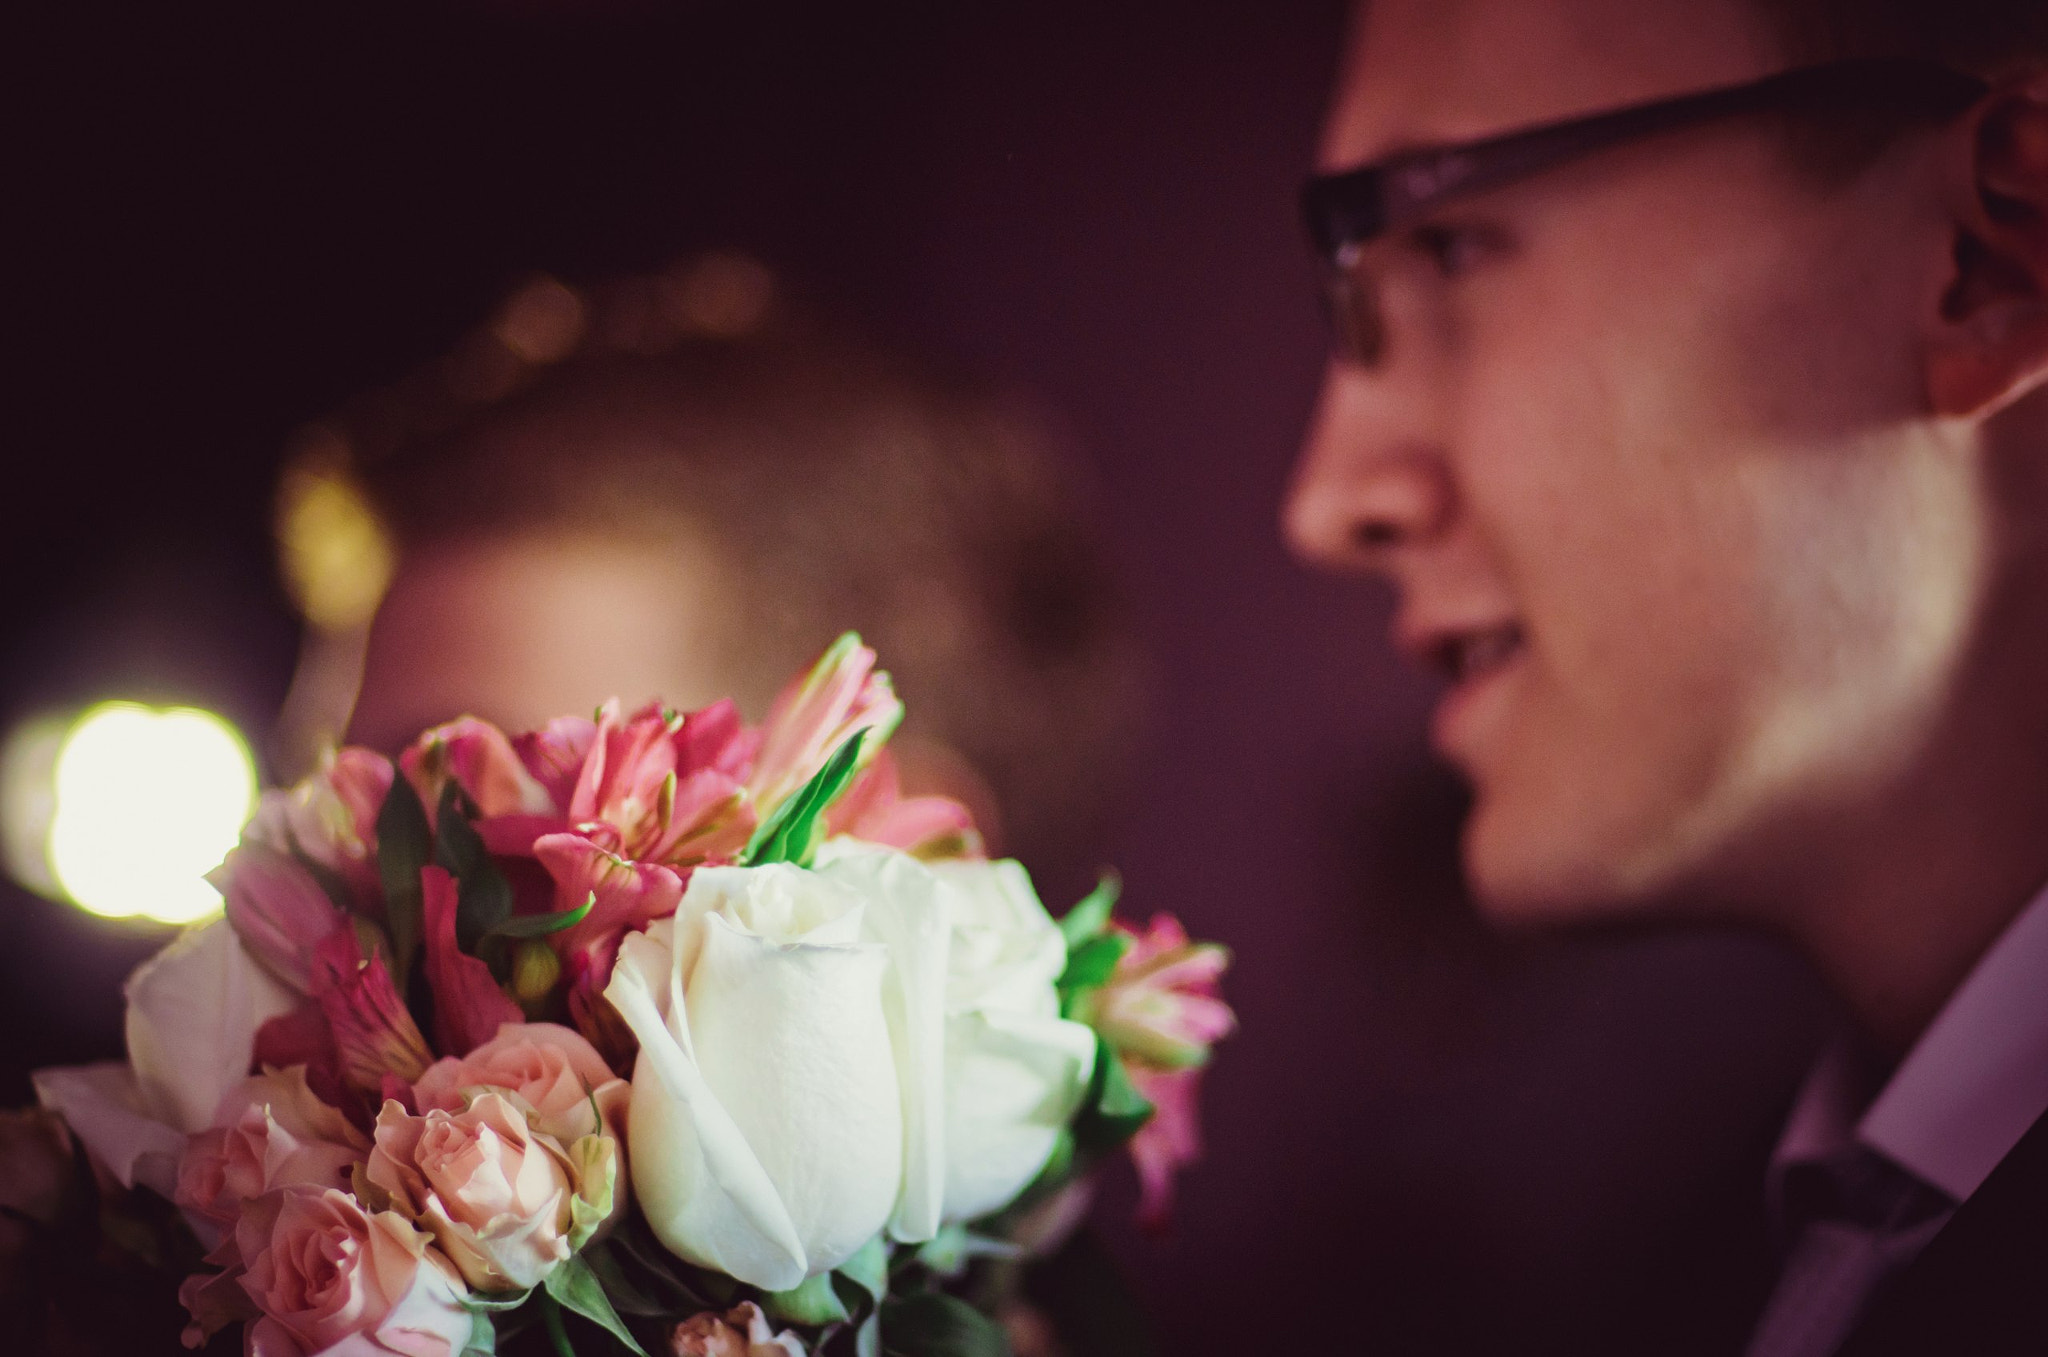 Photograph wedding bouquet by Arseniy Anufriev on 500px